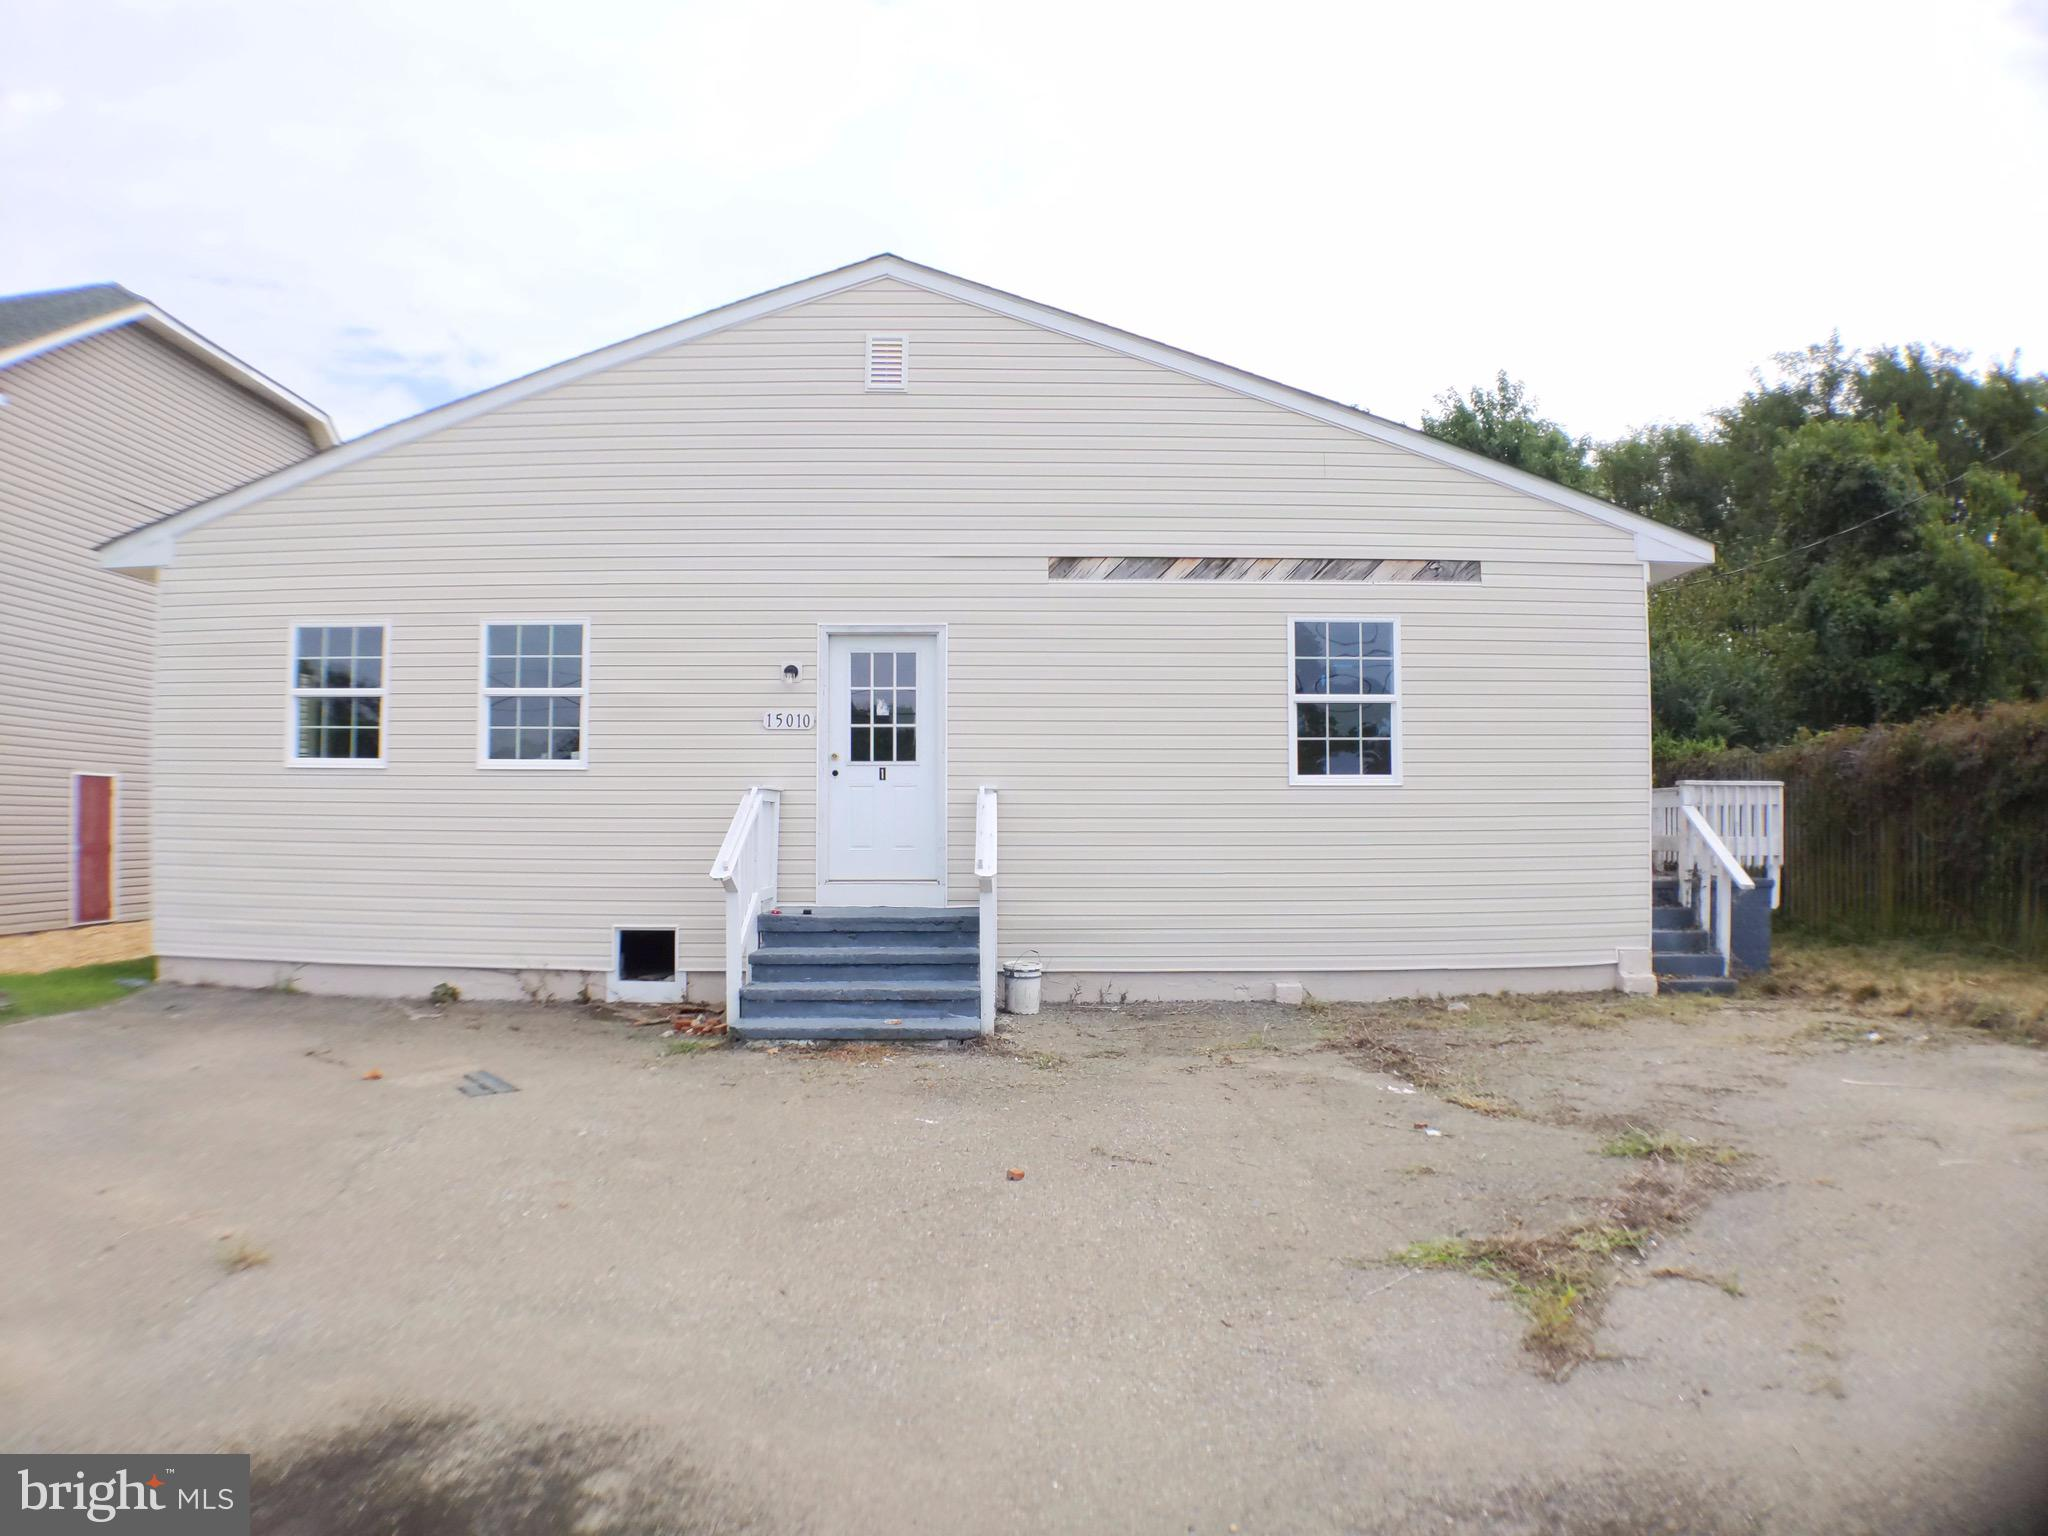 15010 POINT LOOKOUT ROAD, SAINT INIGOES, MD 20684